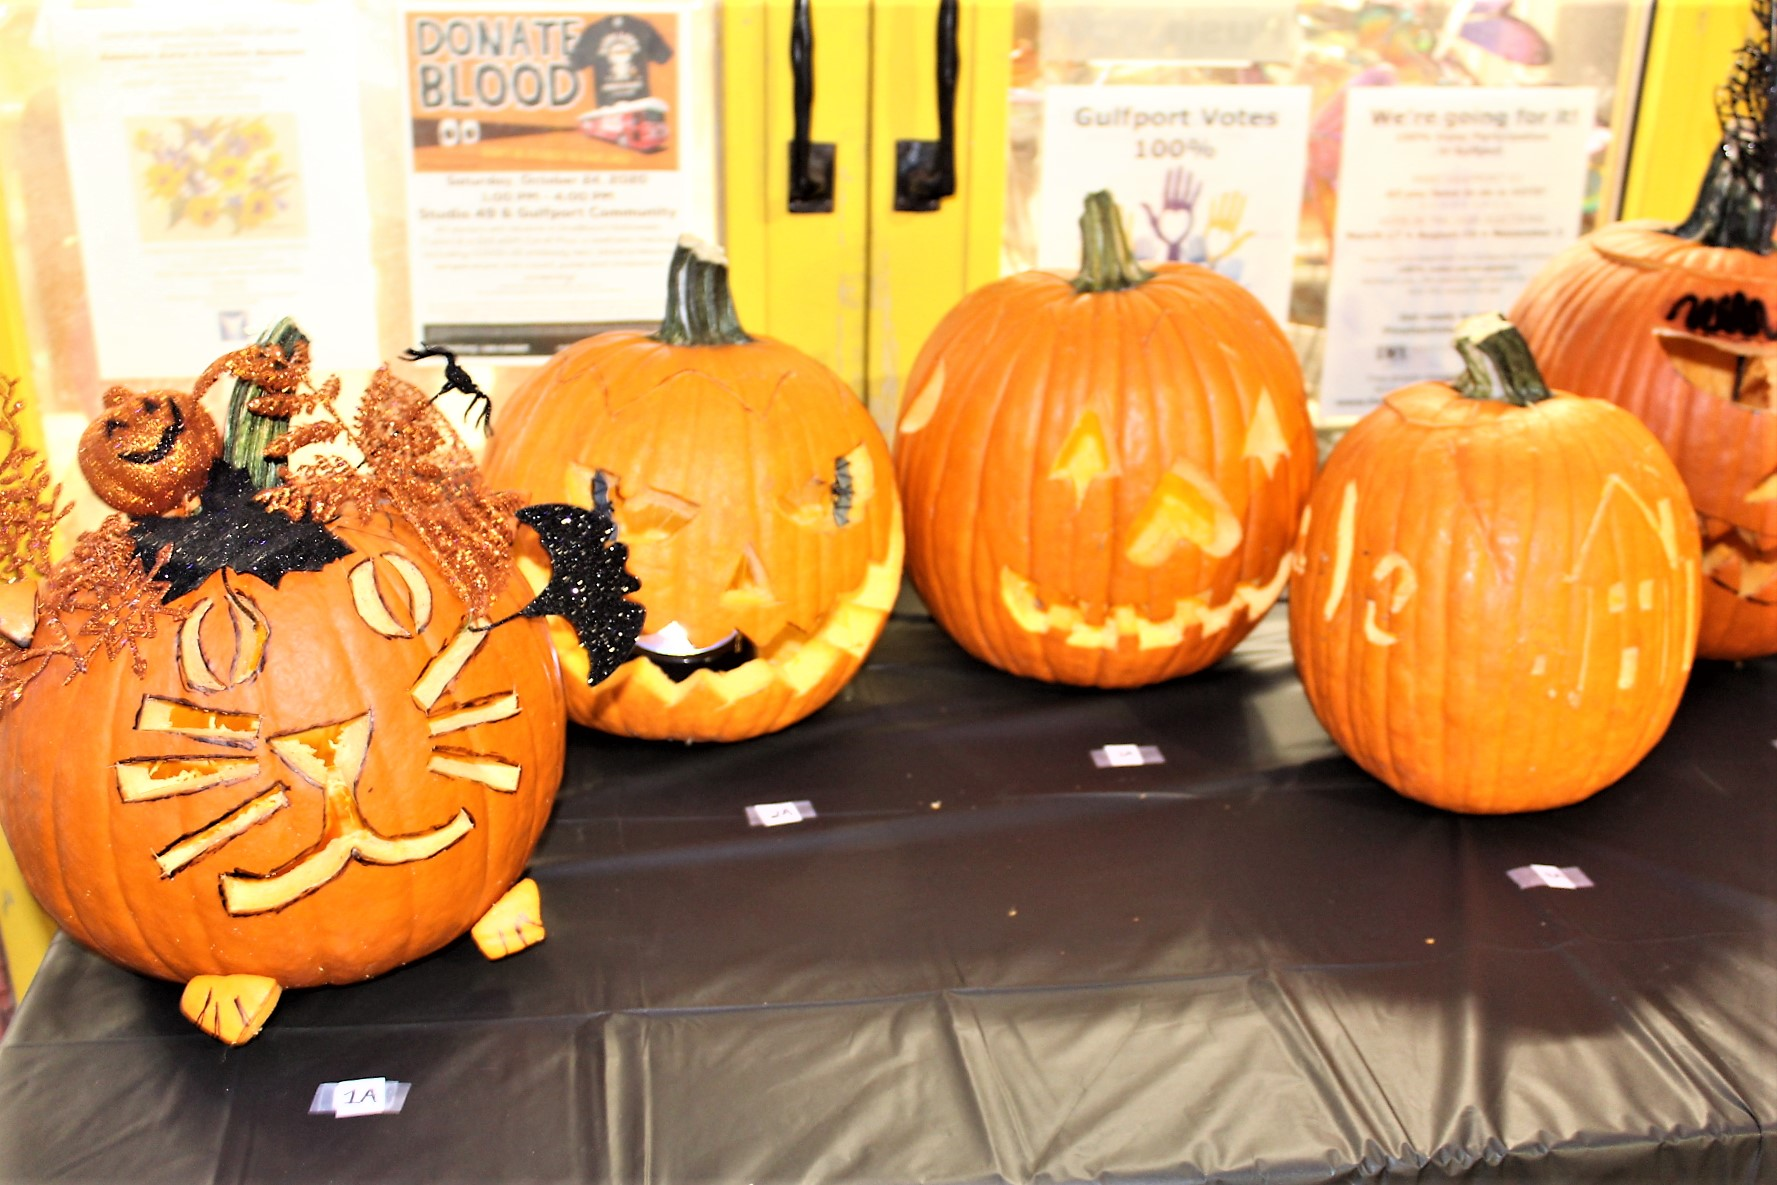 A group of orange, carved and decorated Halloween pumpkins.